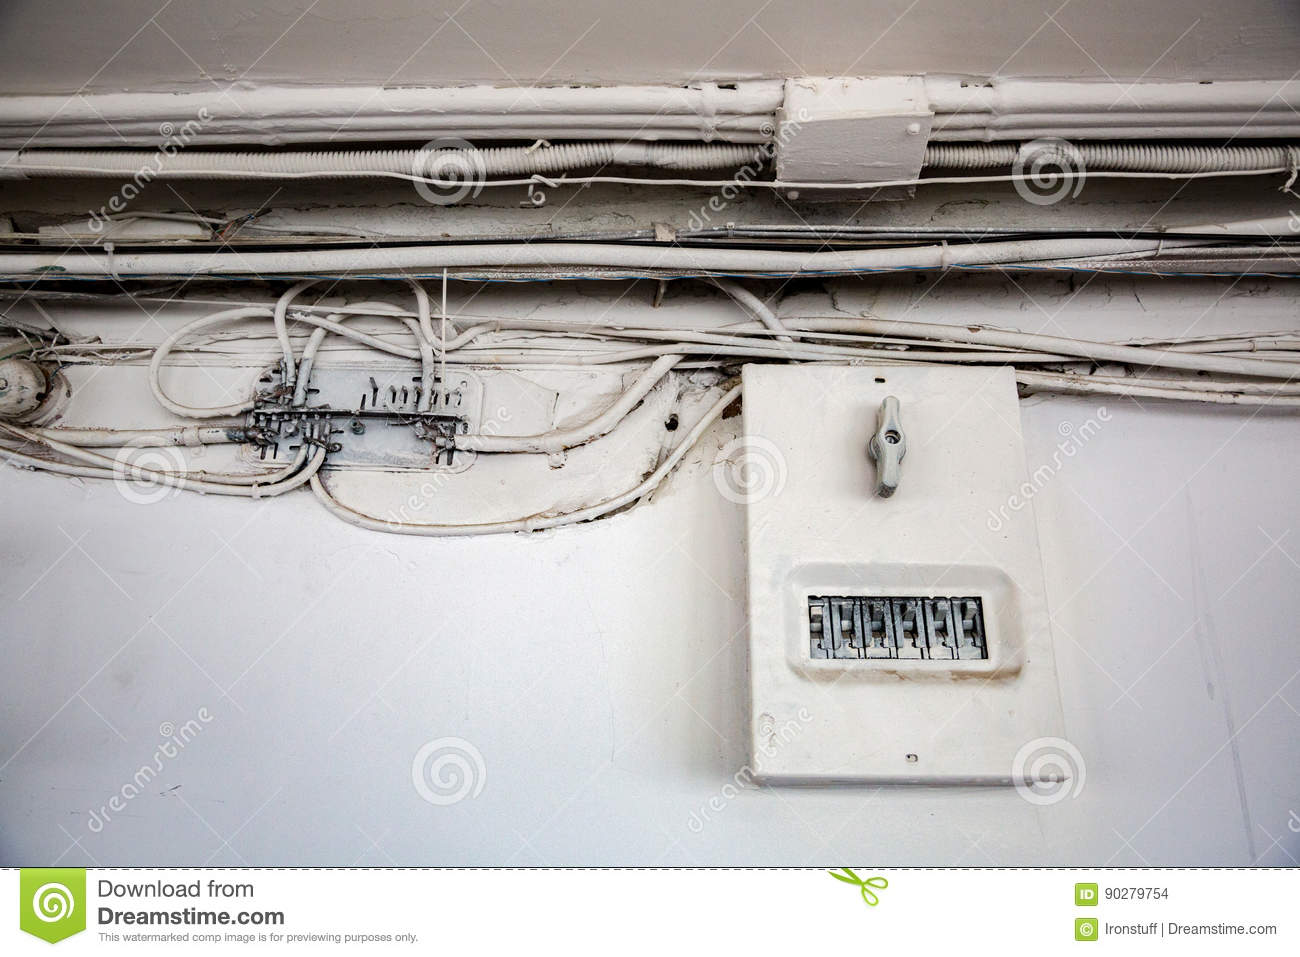 Old Electrical Wiring Stock Photo Image Of Insecure 90279754 Download